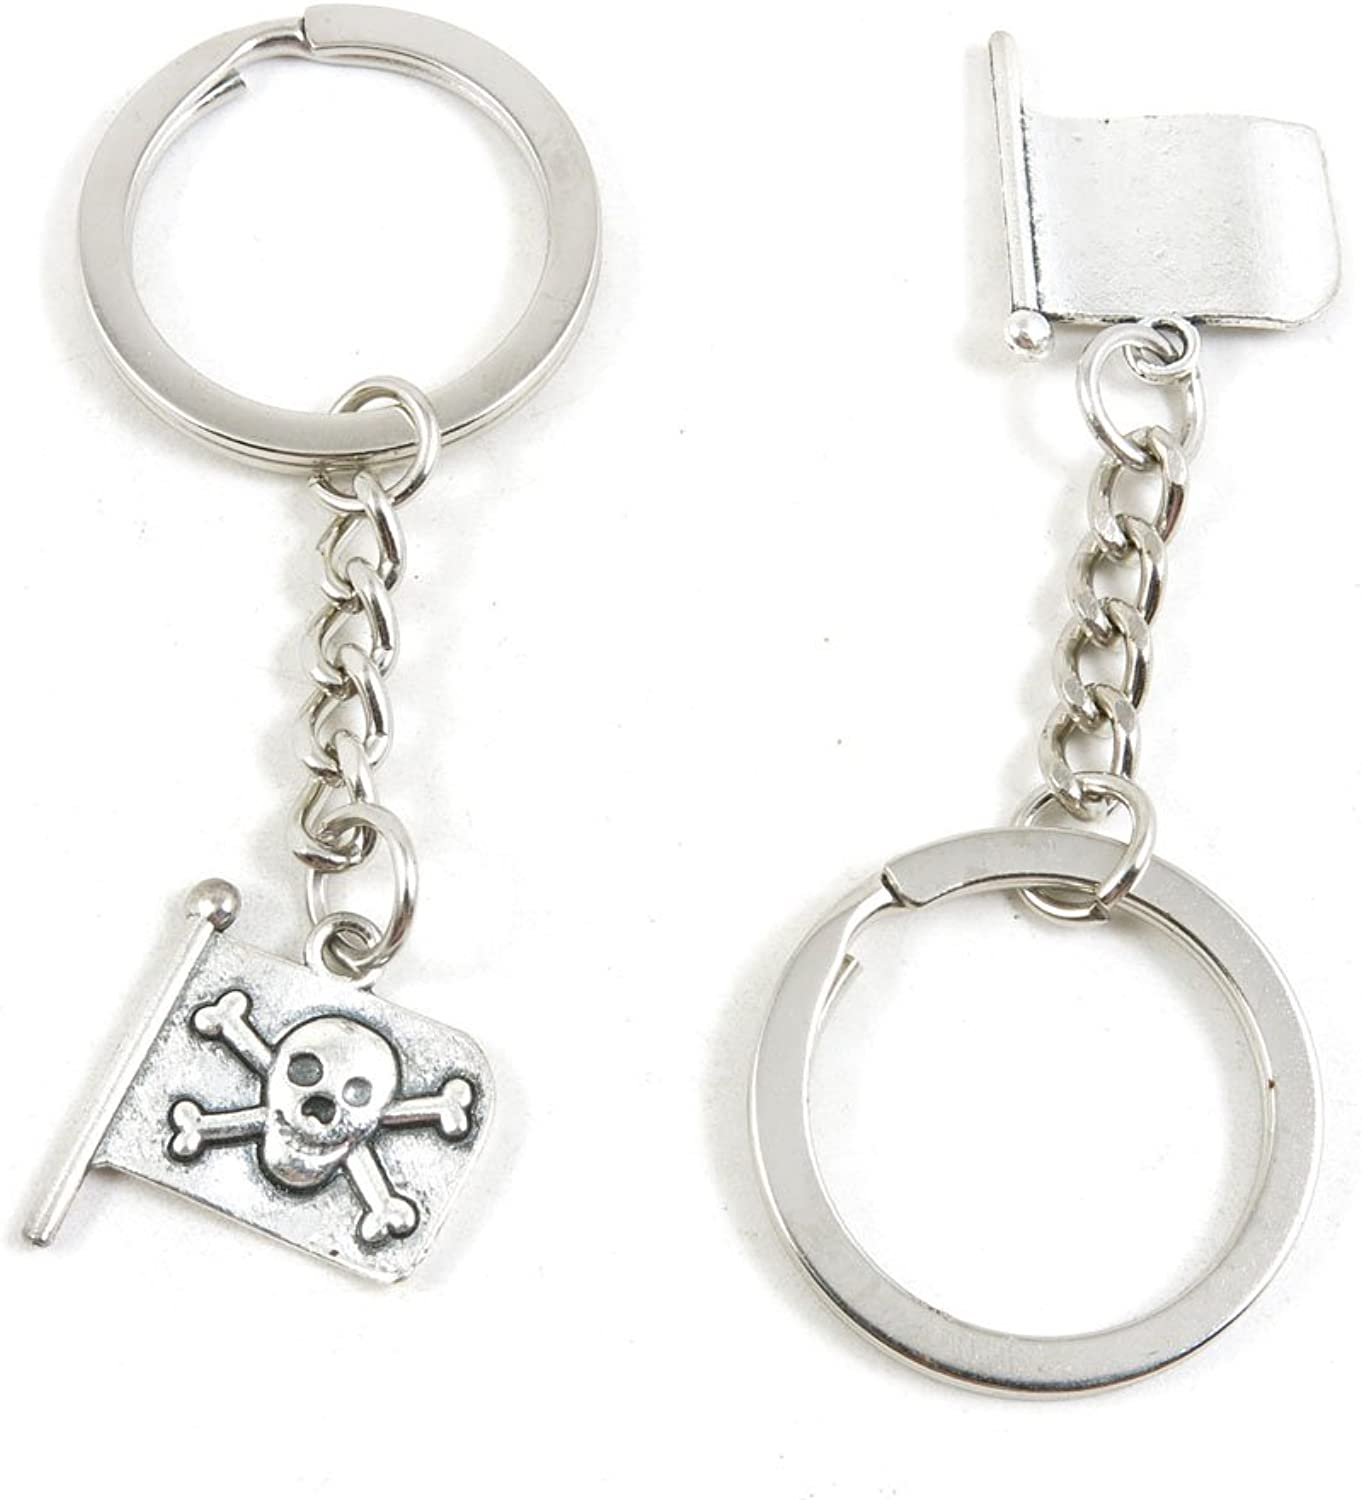 210 Pieces Fashion Jewelry Keyring Keychain Door Car Key Tag Ring Chain Supplier Supply Wholesale Bulk Lots T4PV3 Pirate Skull Flag